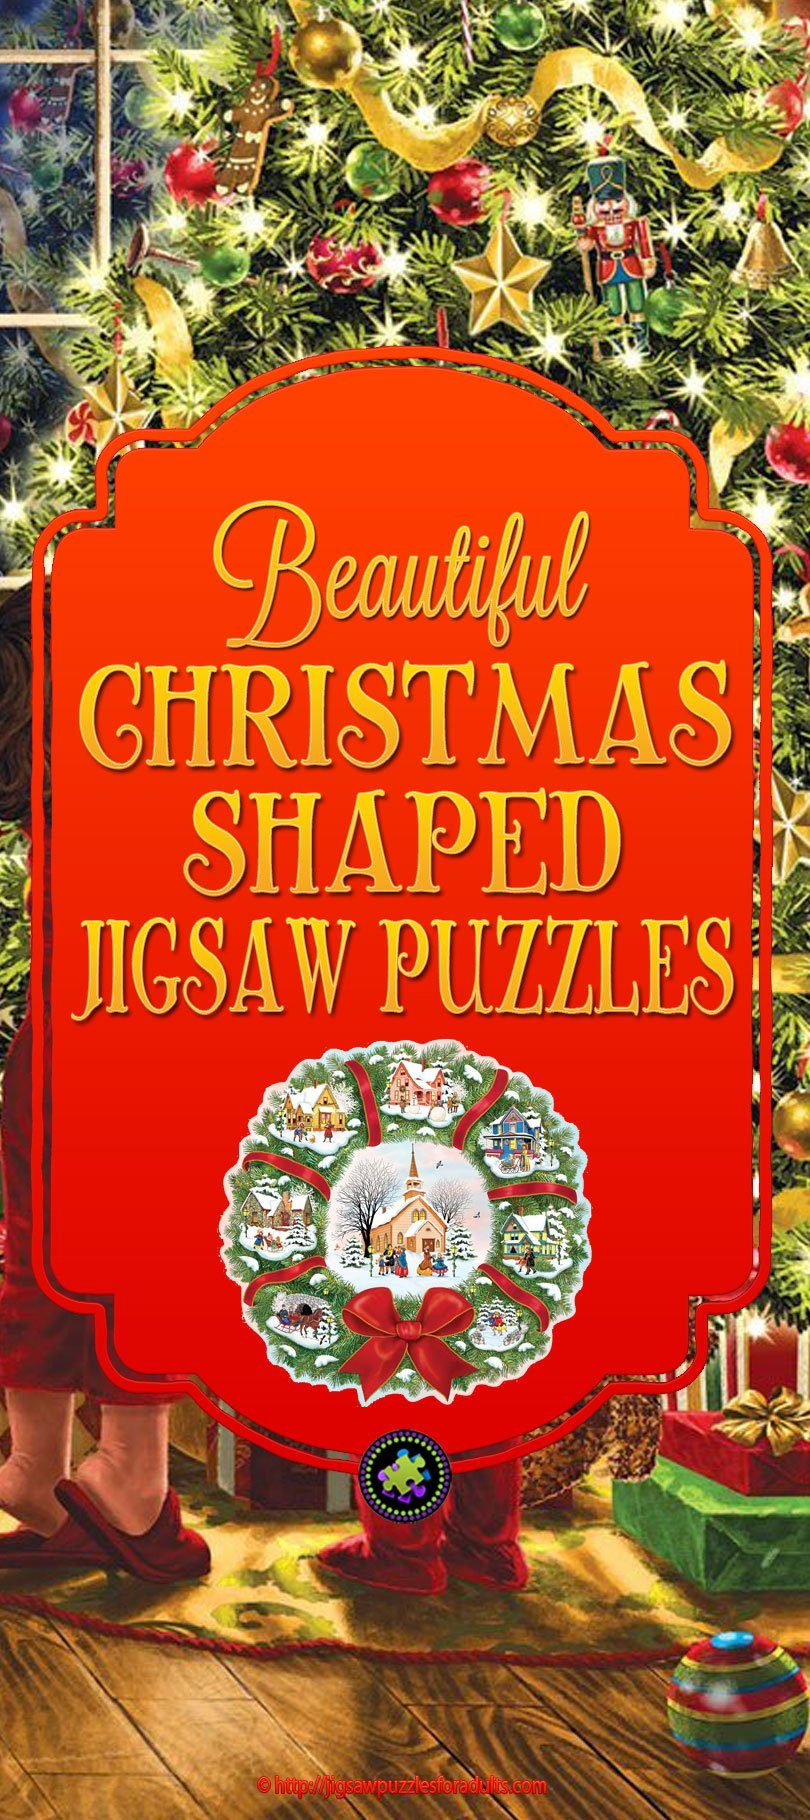 Christmas Shaped Jigsaw Puzzles | Awesome Selection For 2017